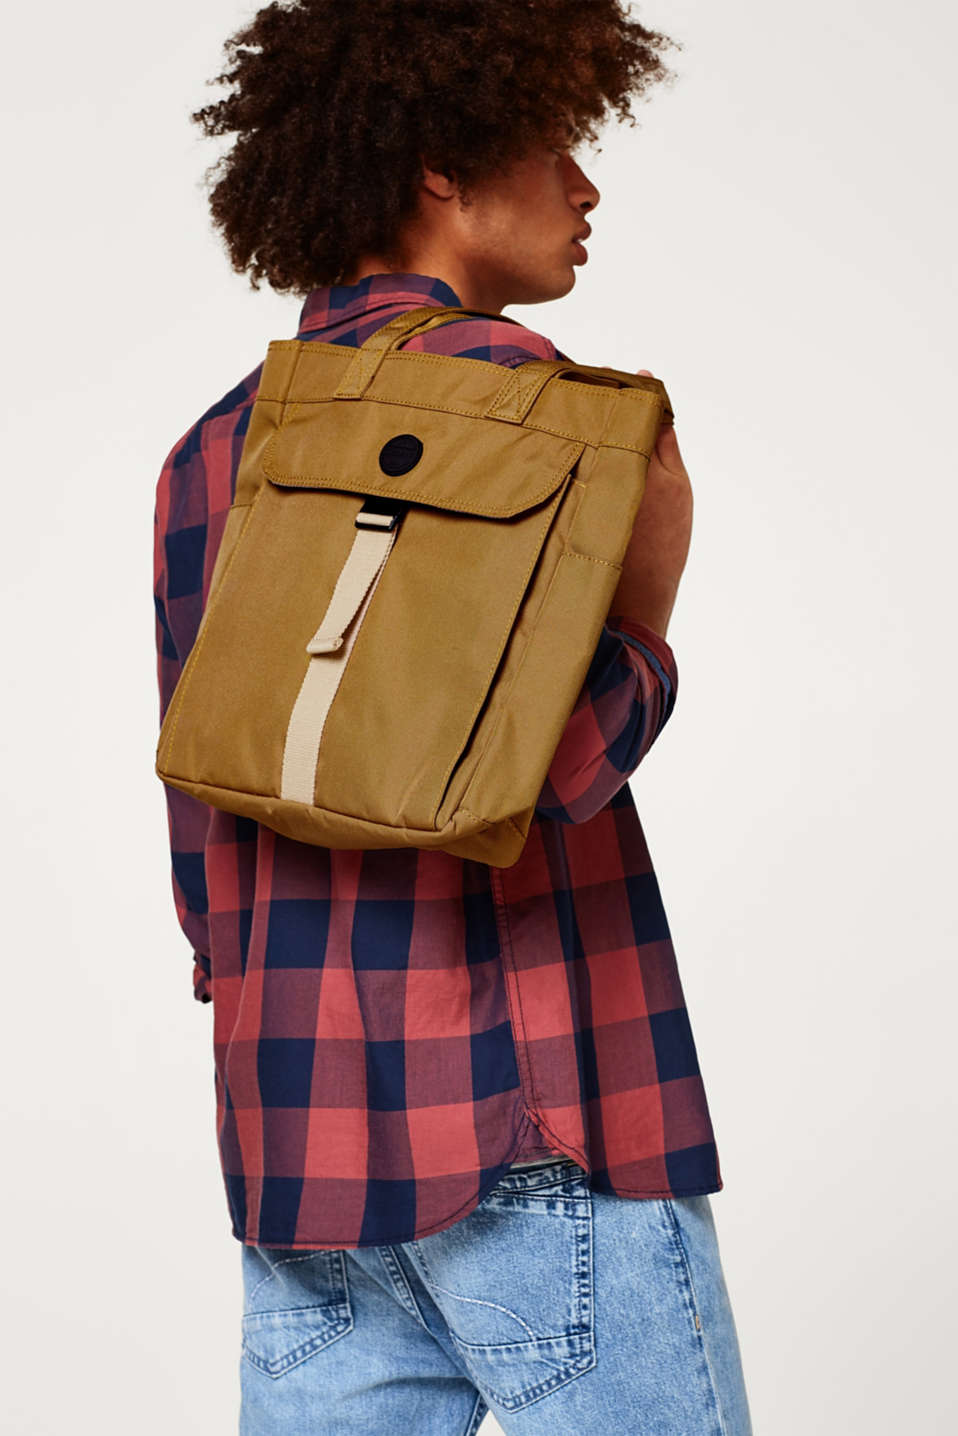 Tote bag in robust canvas with a large front pocket